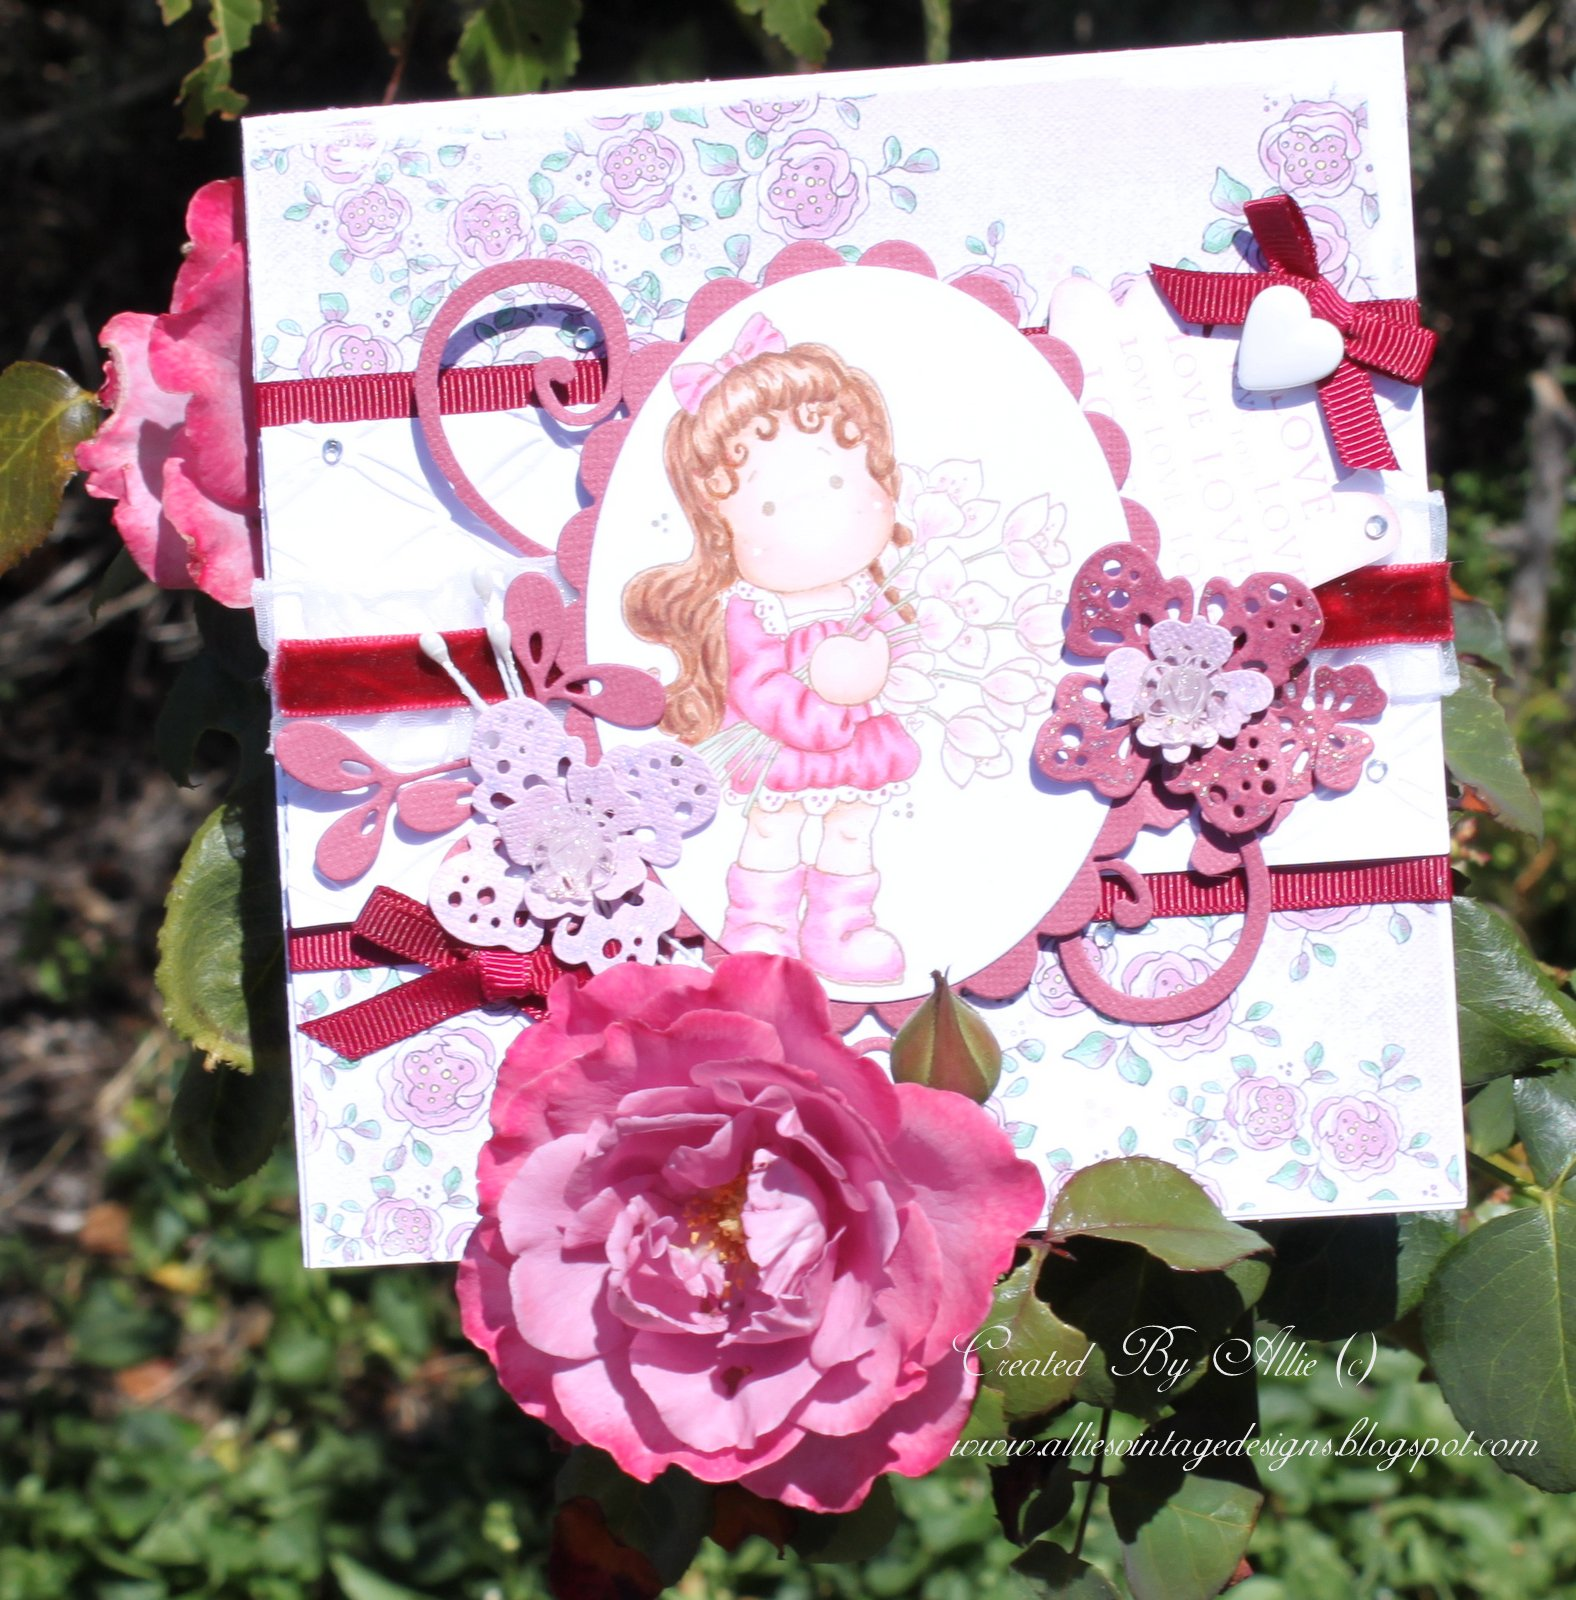 Vintage blue tilda with hellebores handmade magnolia card flowers i will show you what i mean its just a beautiful gardenher sanctuary sorry some pics are a little blurry4 yr olds butterflies and izmirmasajfo